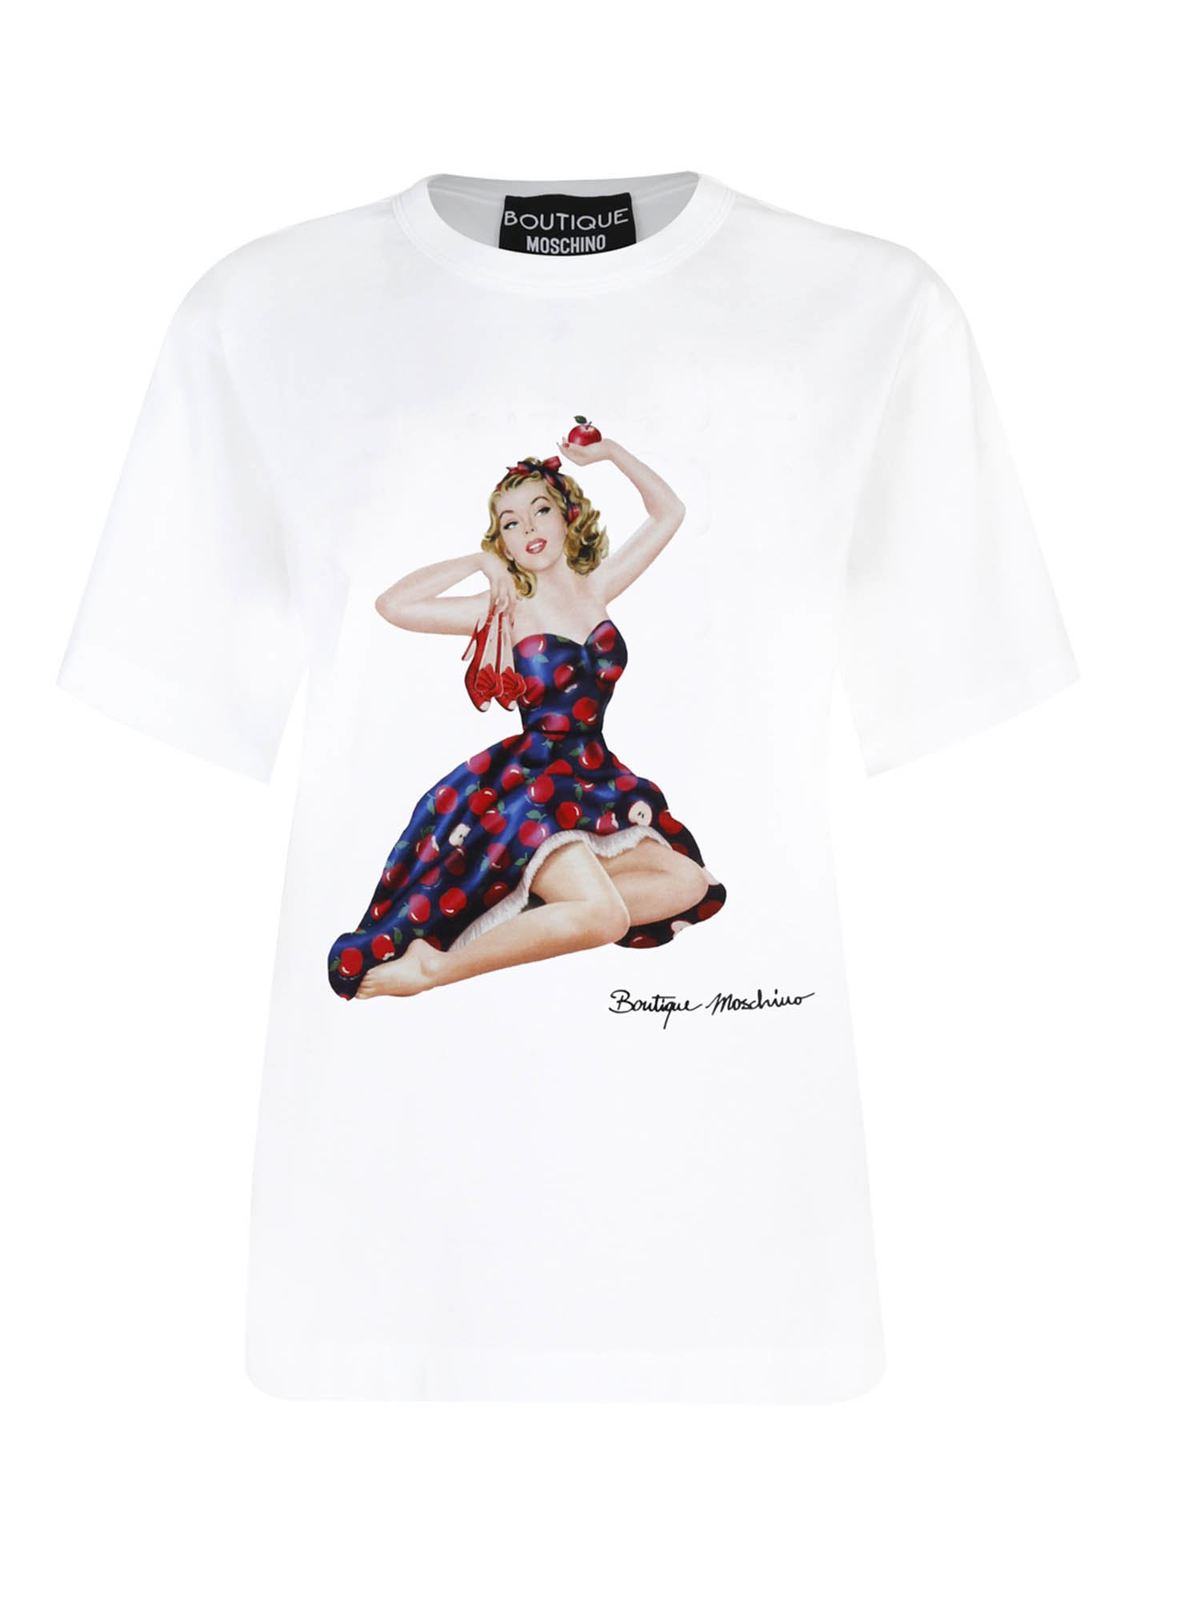 Moschino Boutique Cottons PIN UP APPLES PRINT T-SHIRT IN WHITE